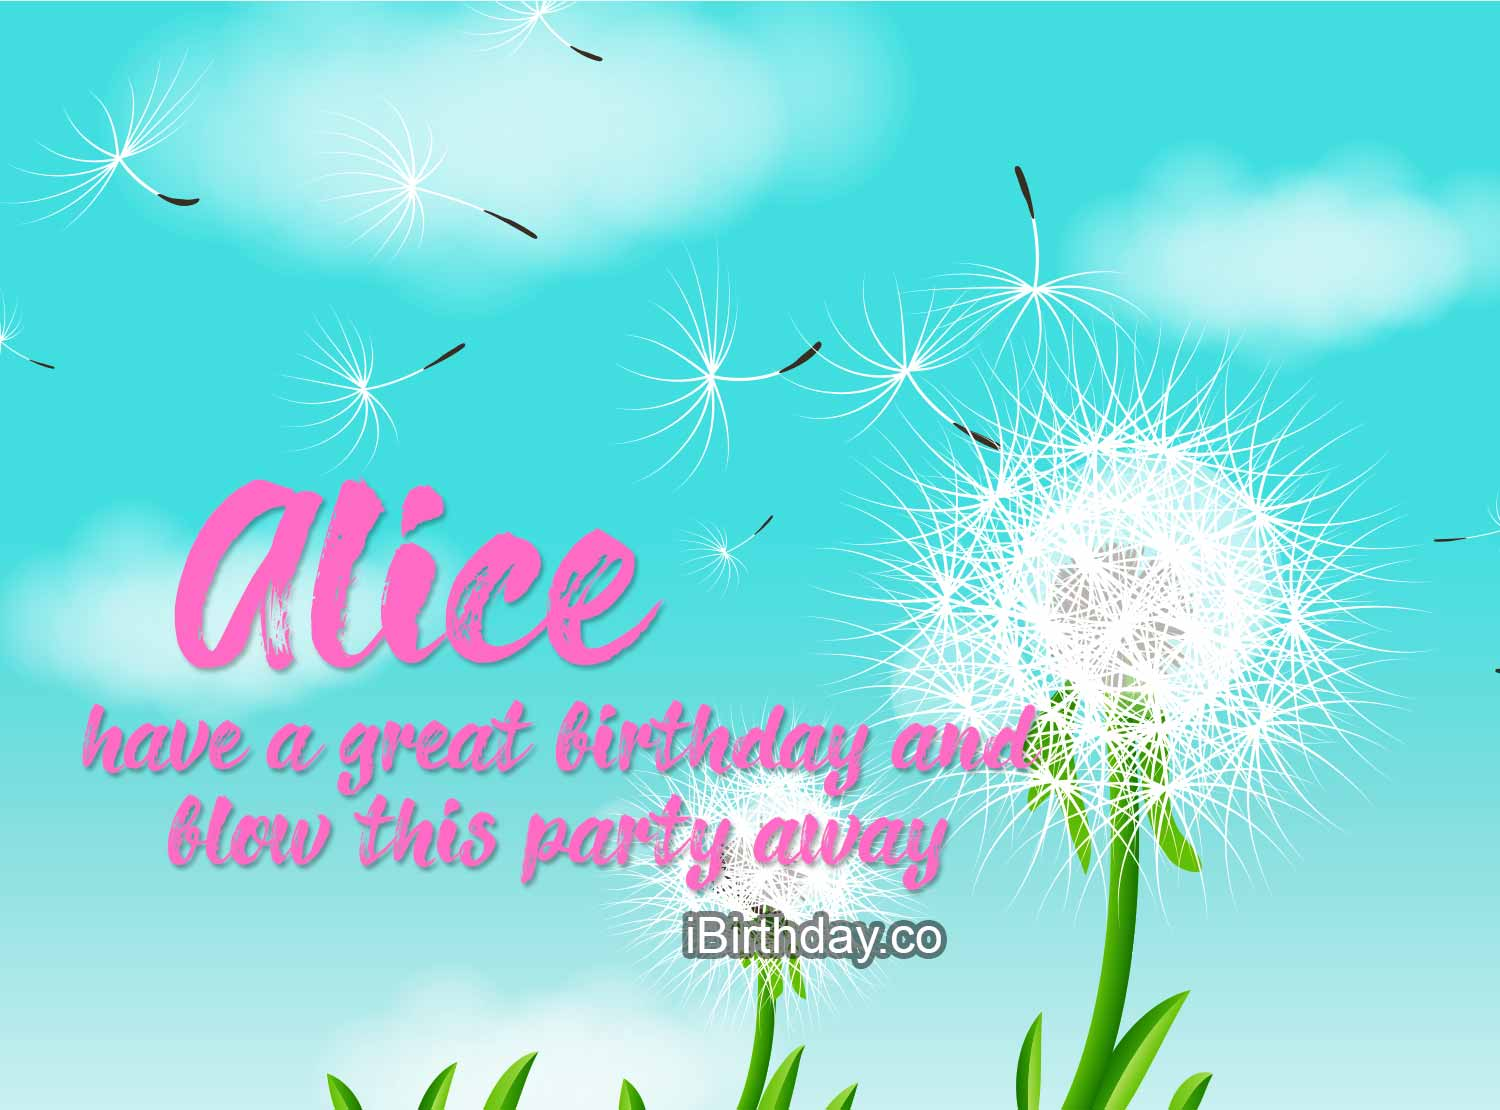 ALice Dandelion Birthday Wish Happy Birthday